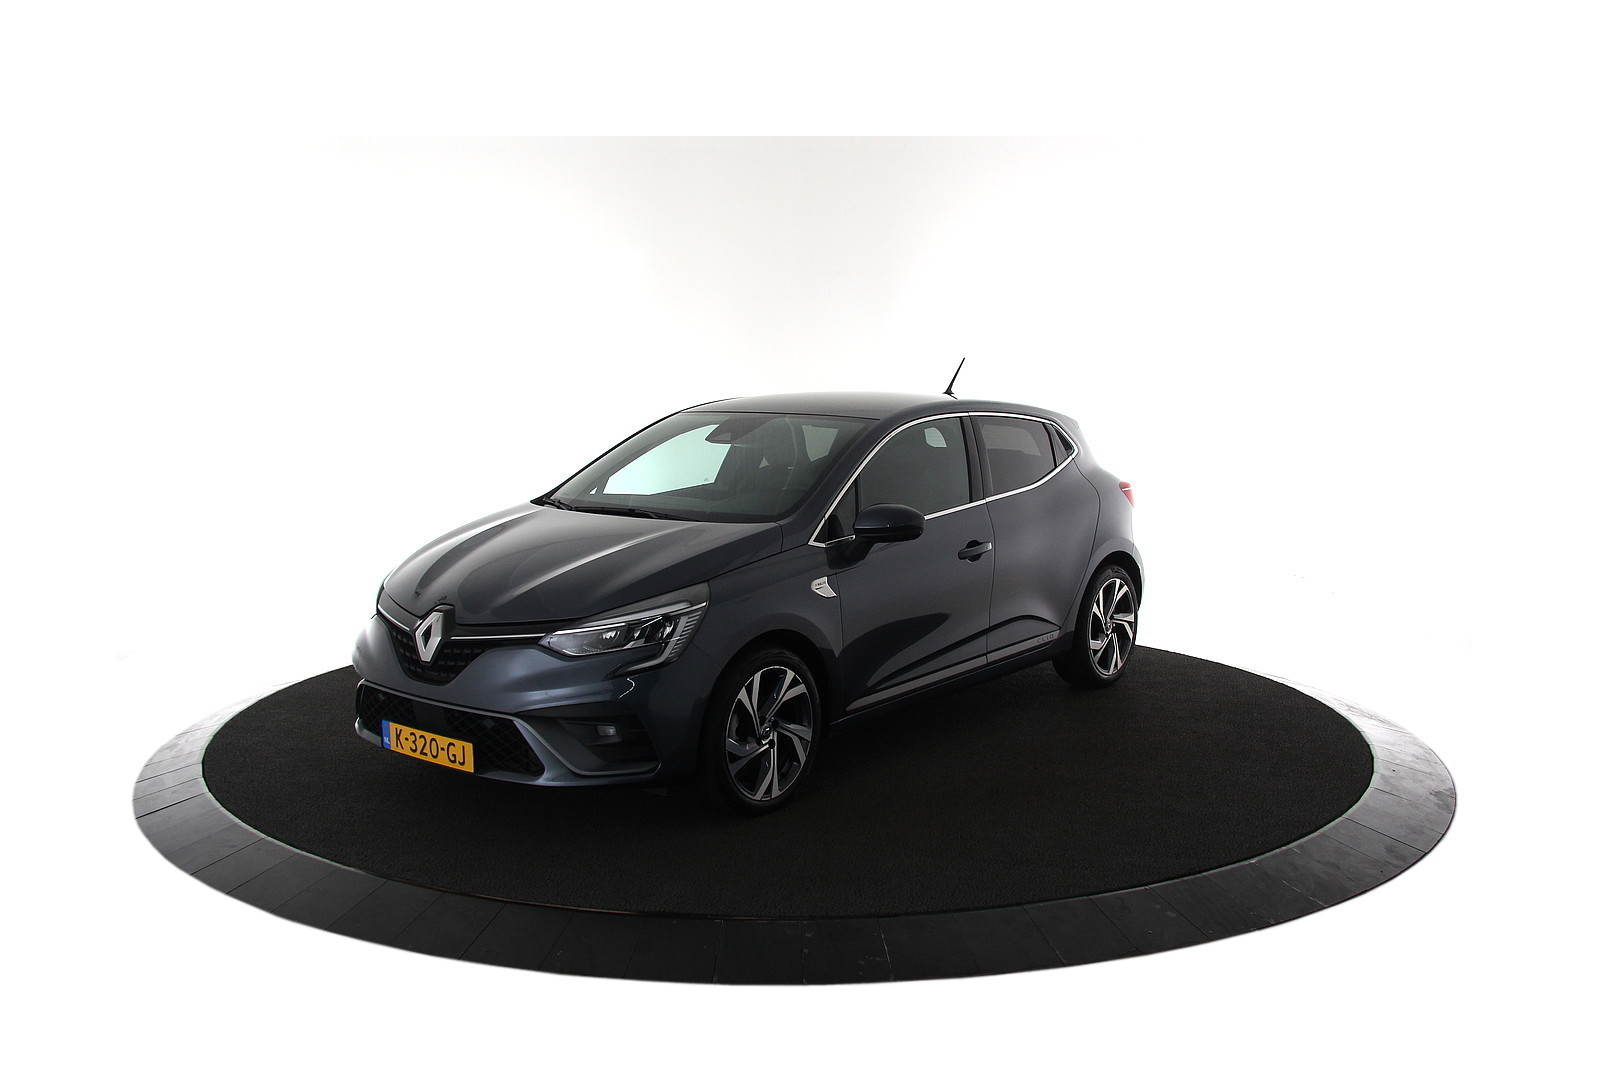 Renault Clio 1.3 TCe R.S. Line Automaat